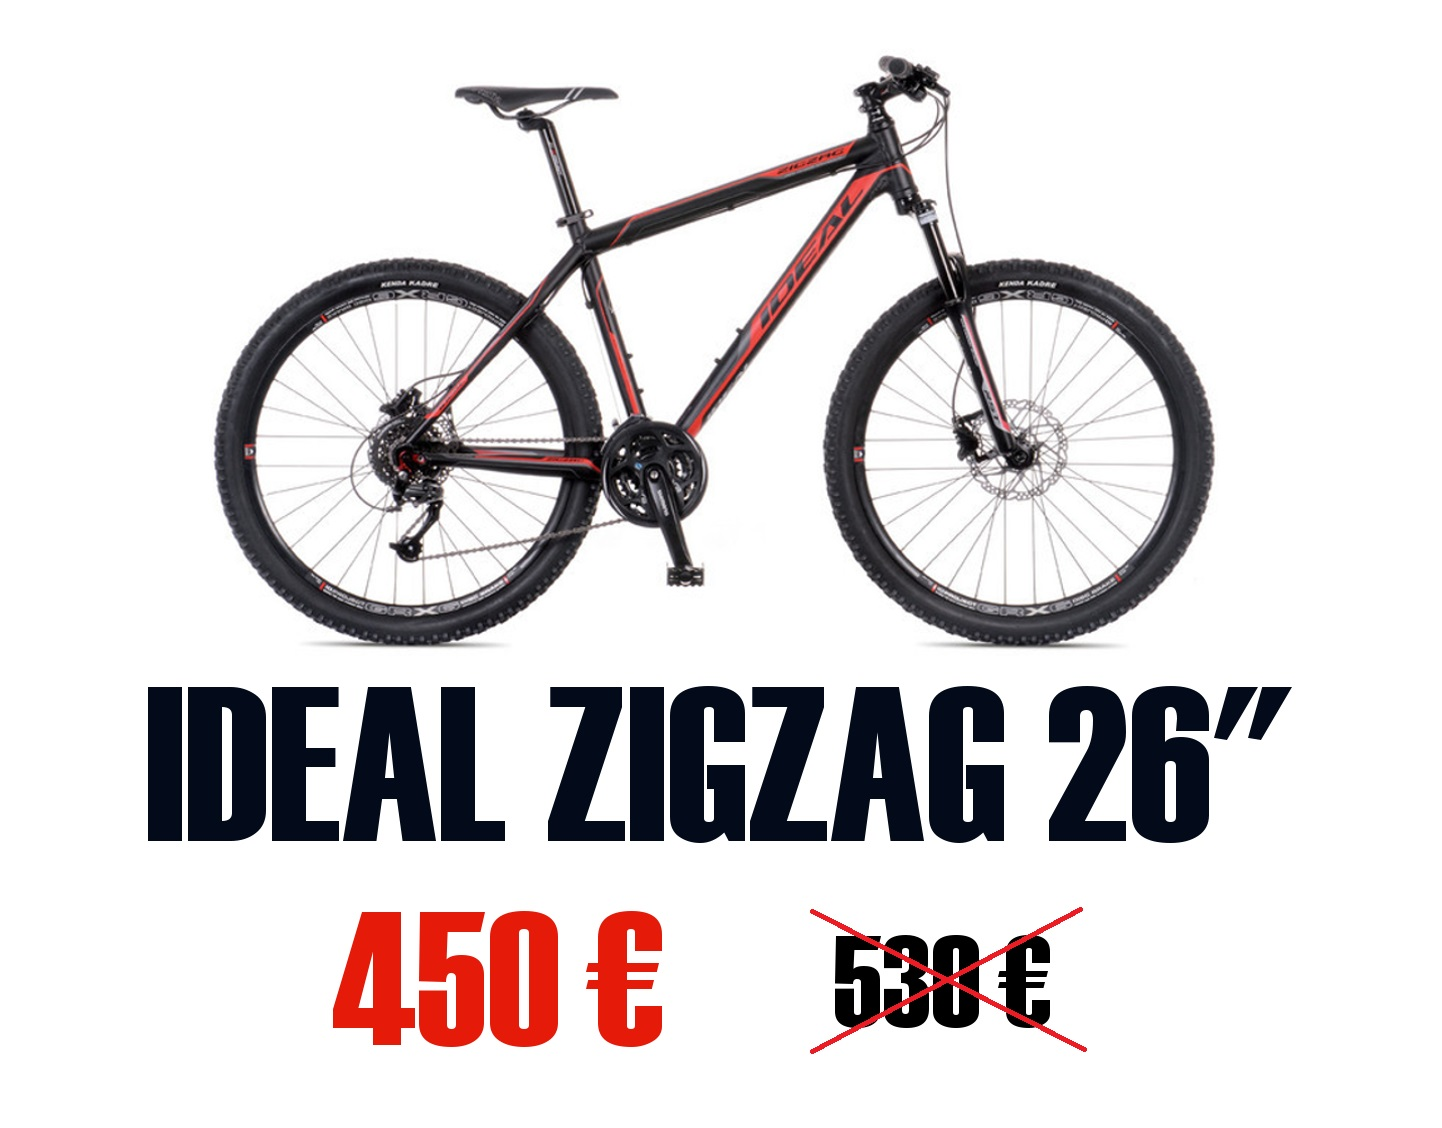 PROMO_IDEAL_ZIGZAG